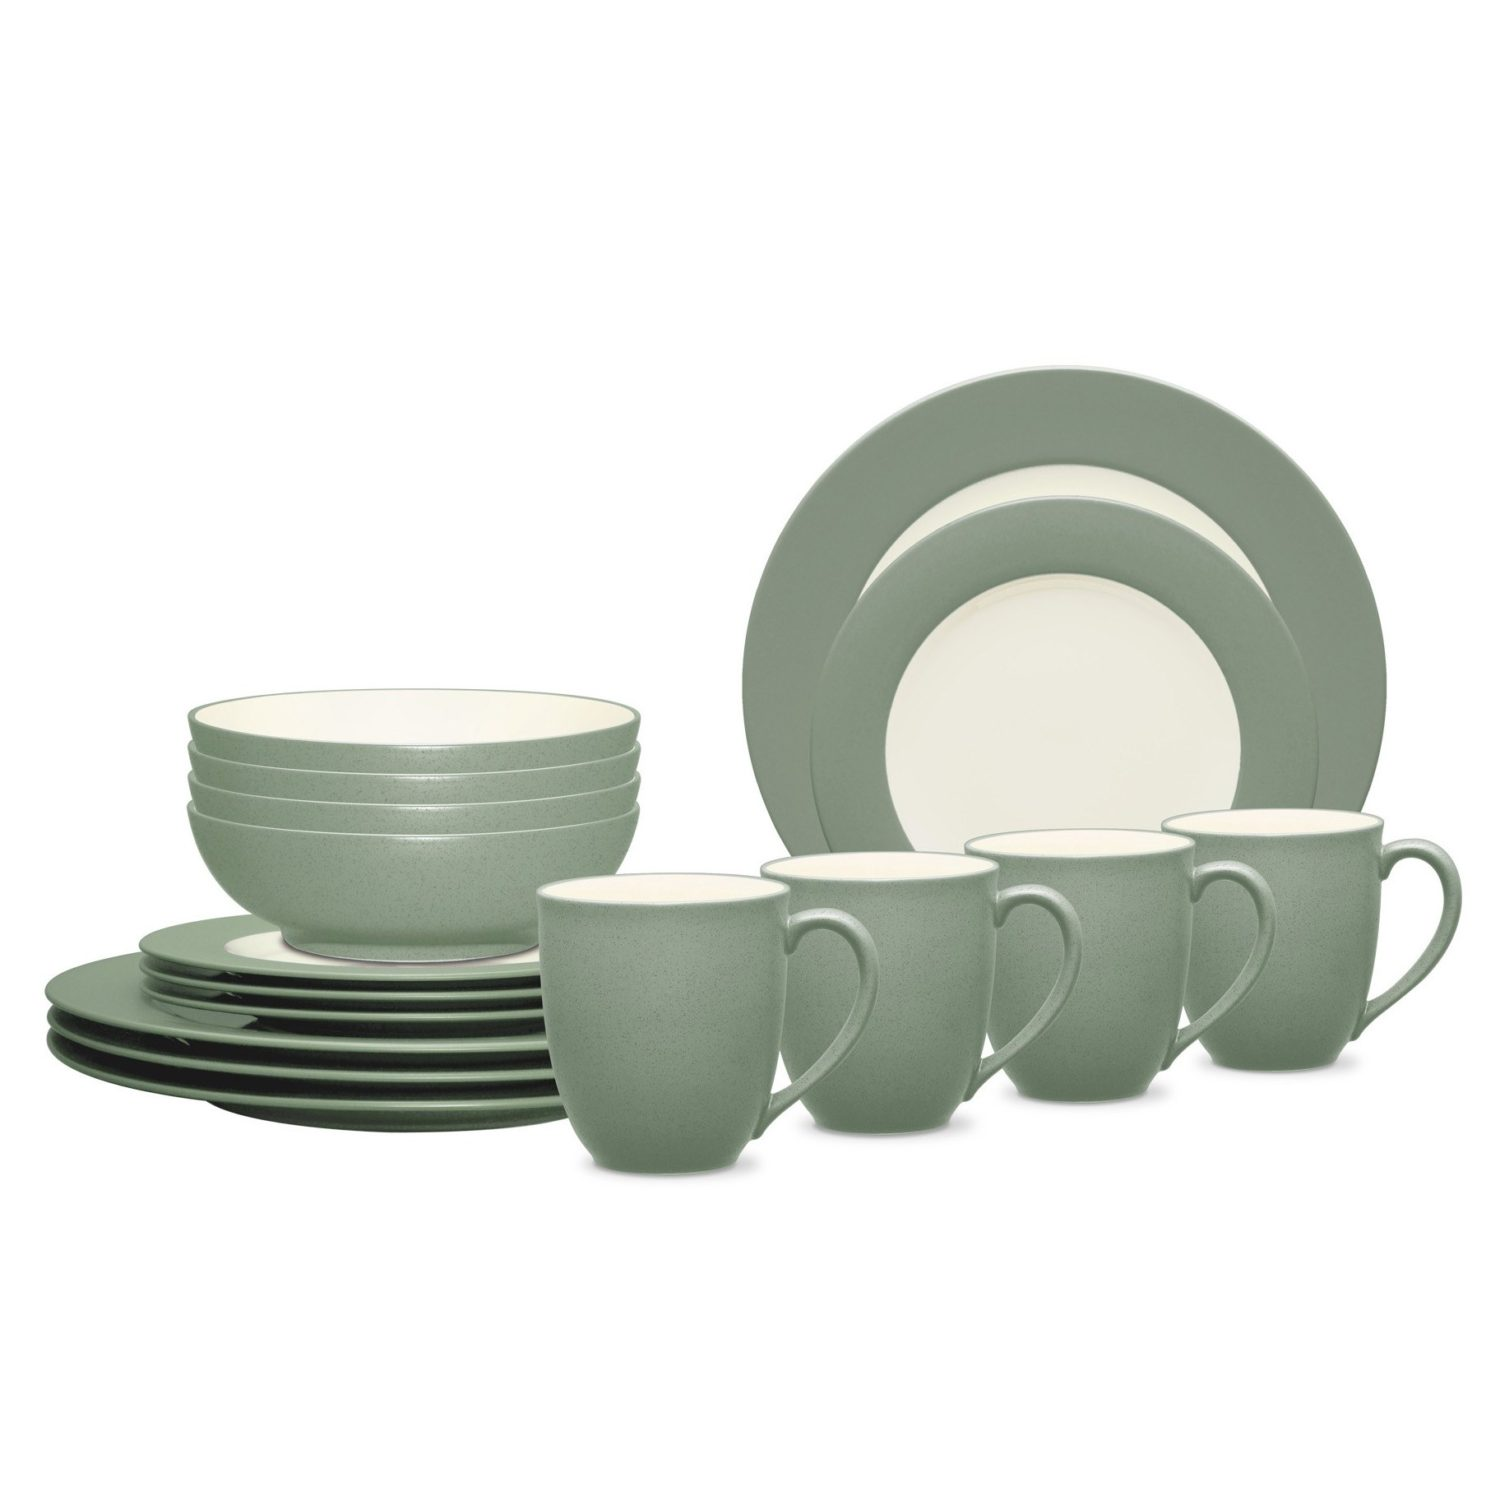 Noritake Colorwave Green Rim 16-Piece Dinnerware Set